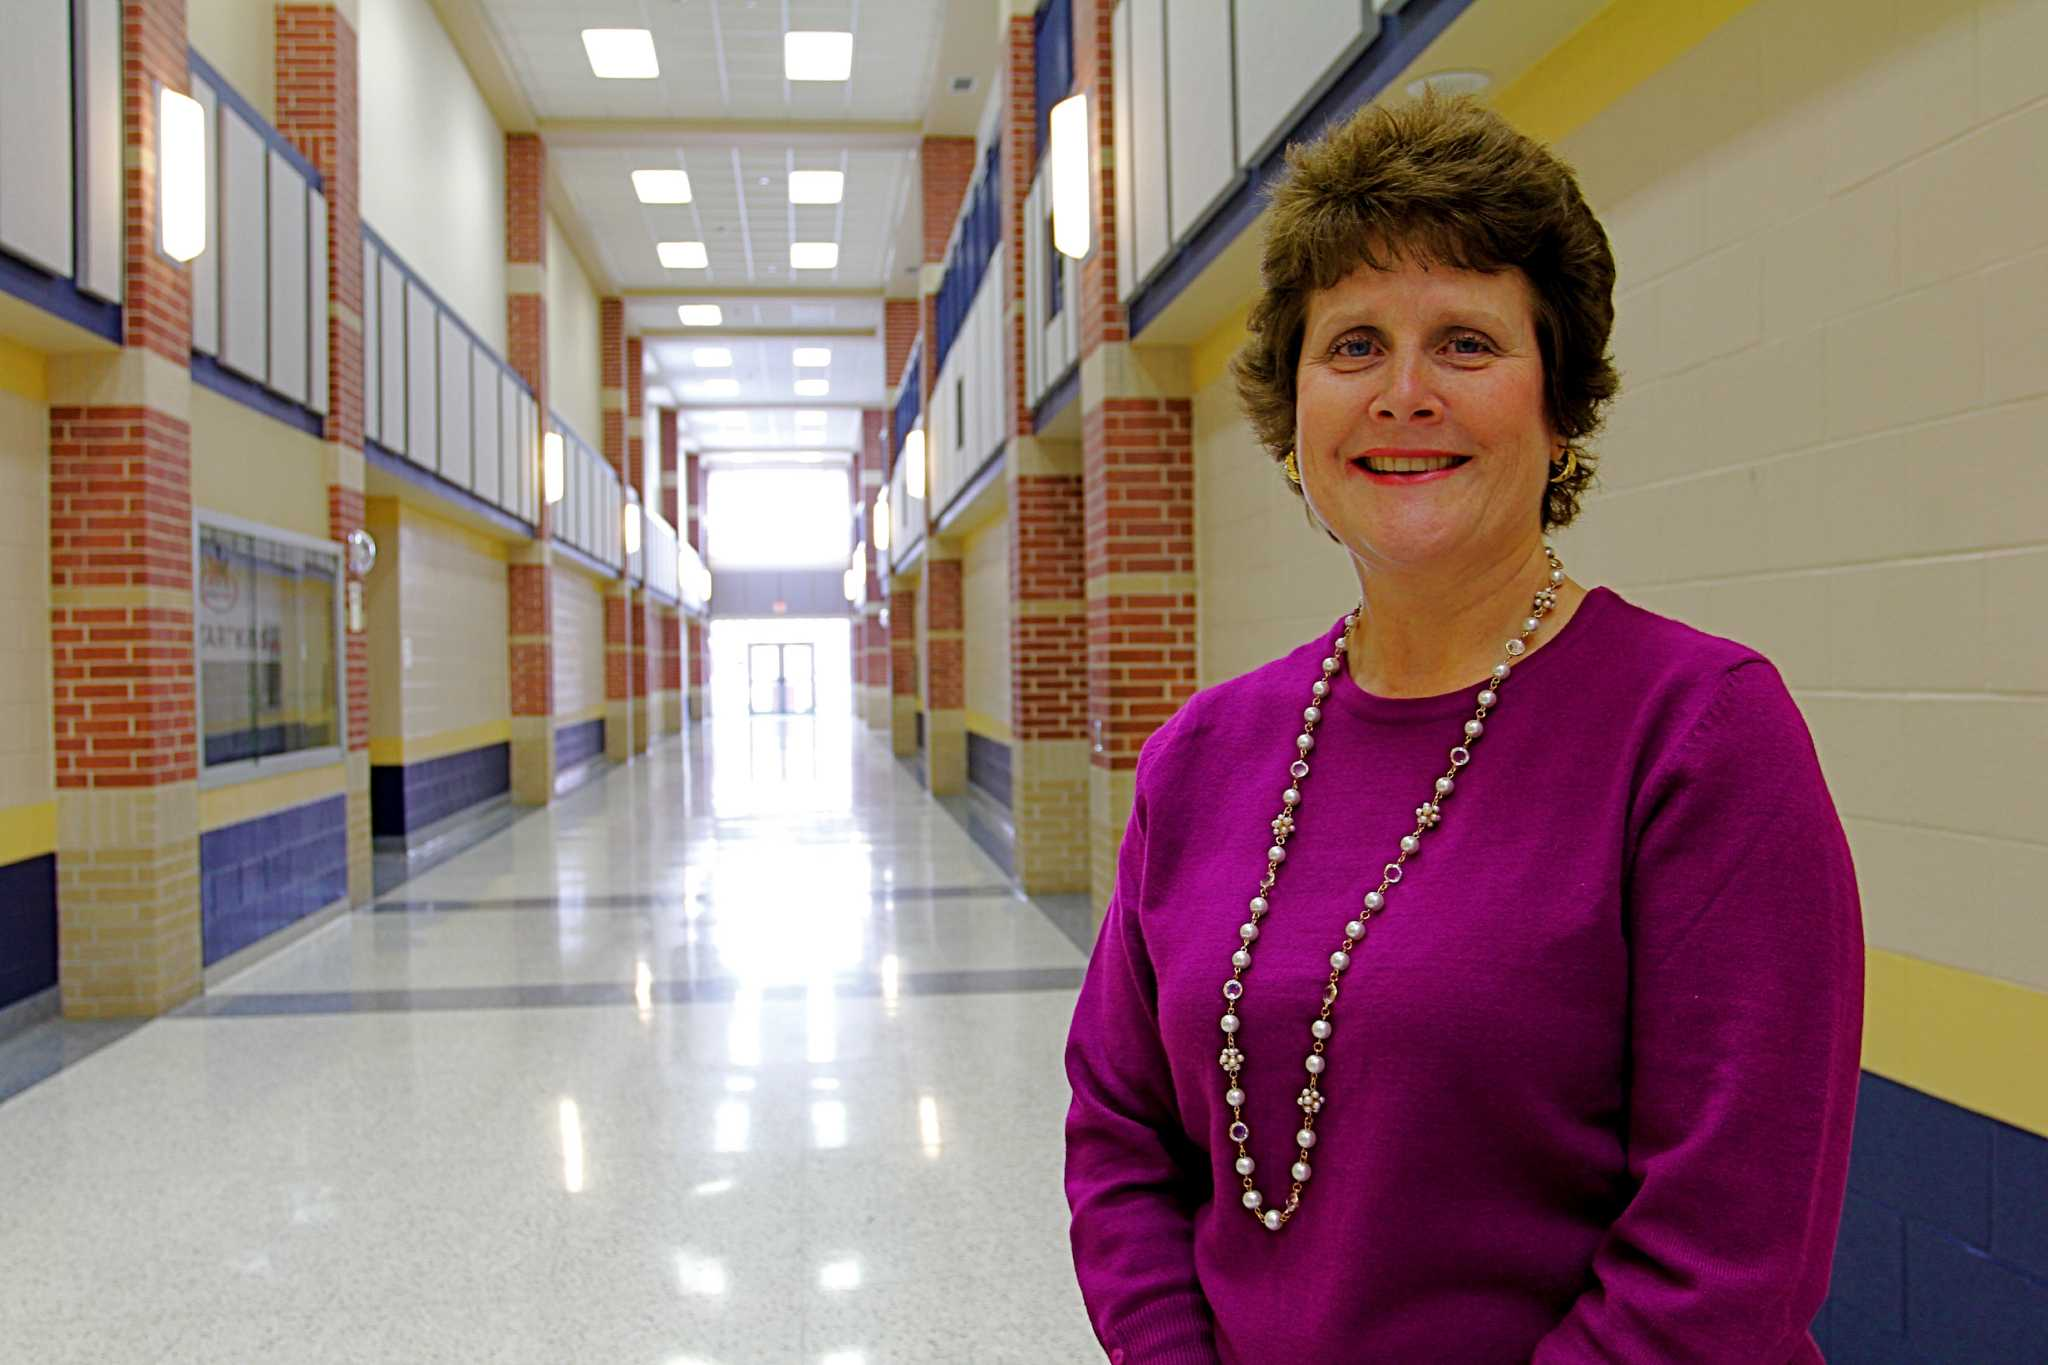 FBISD approaching discipline in a new way - Houston Chronicle